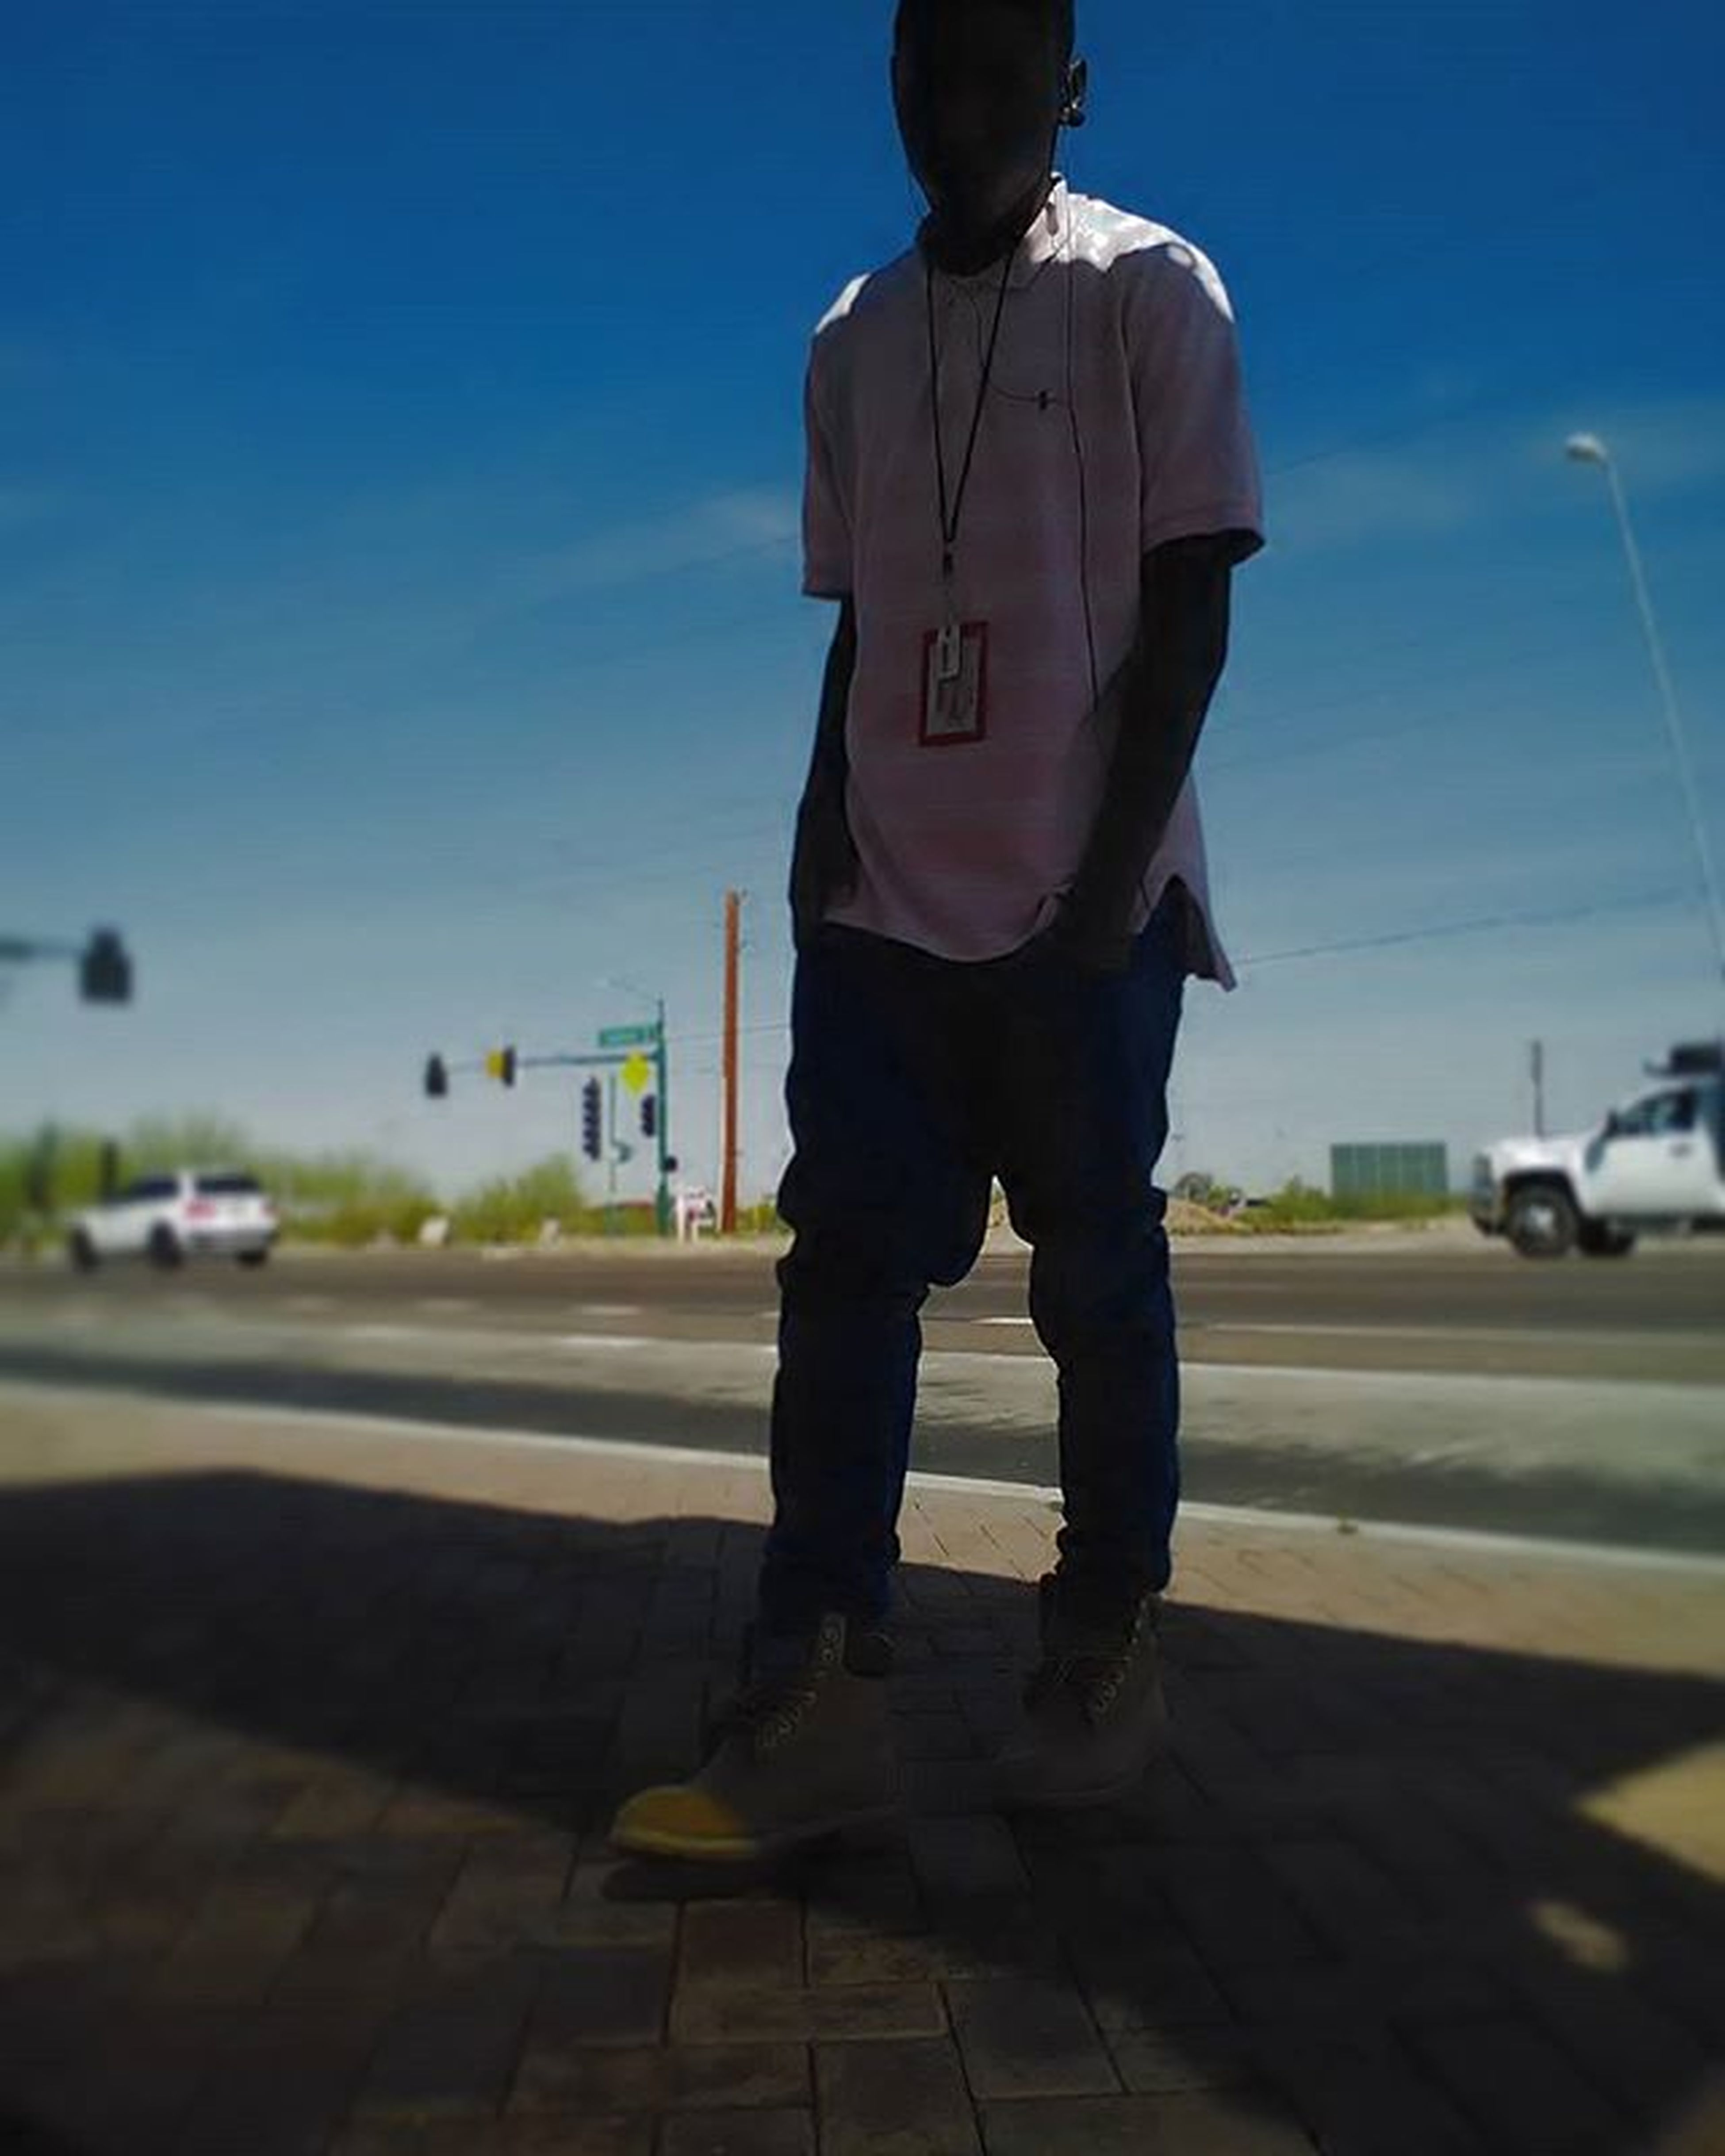 DOPE Like Follow Tbh Boots Polo Pink Patchedjeans Froindj😁 🙌 👍 👕 👔 👖 👖 👞👞👌